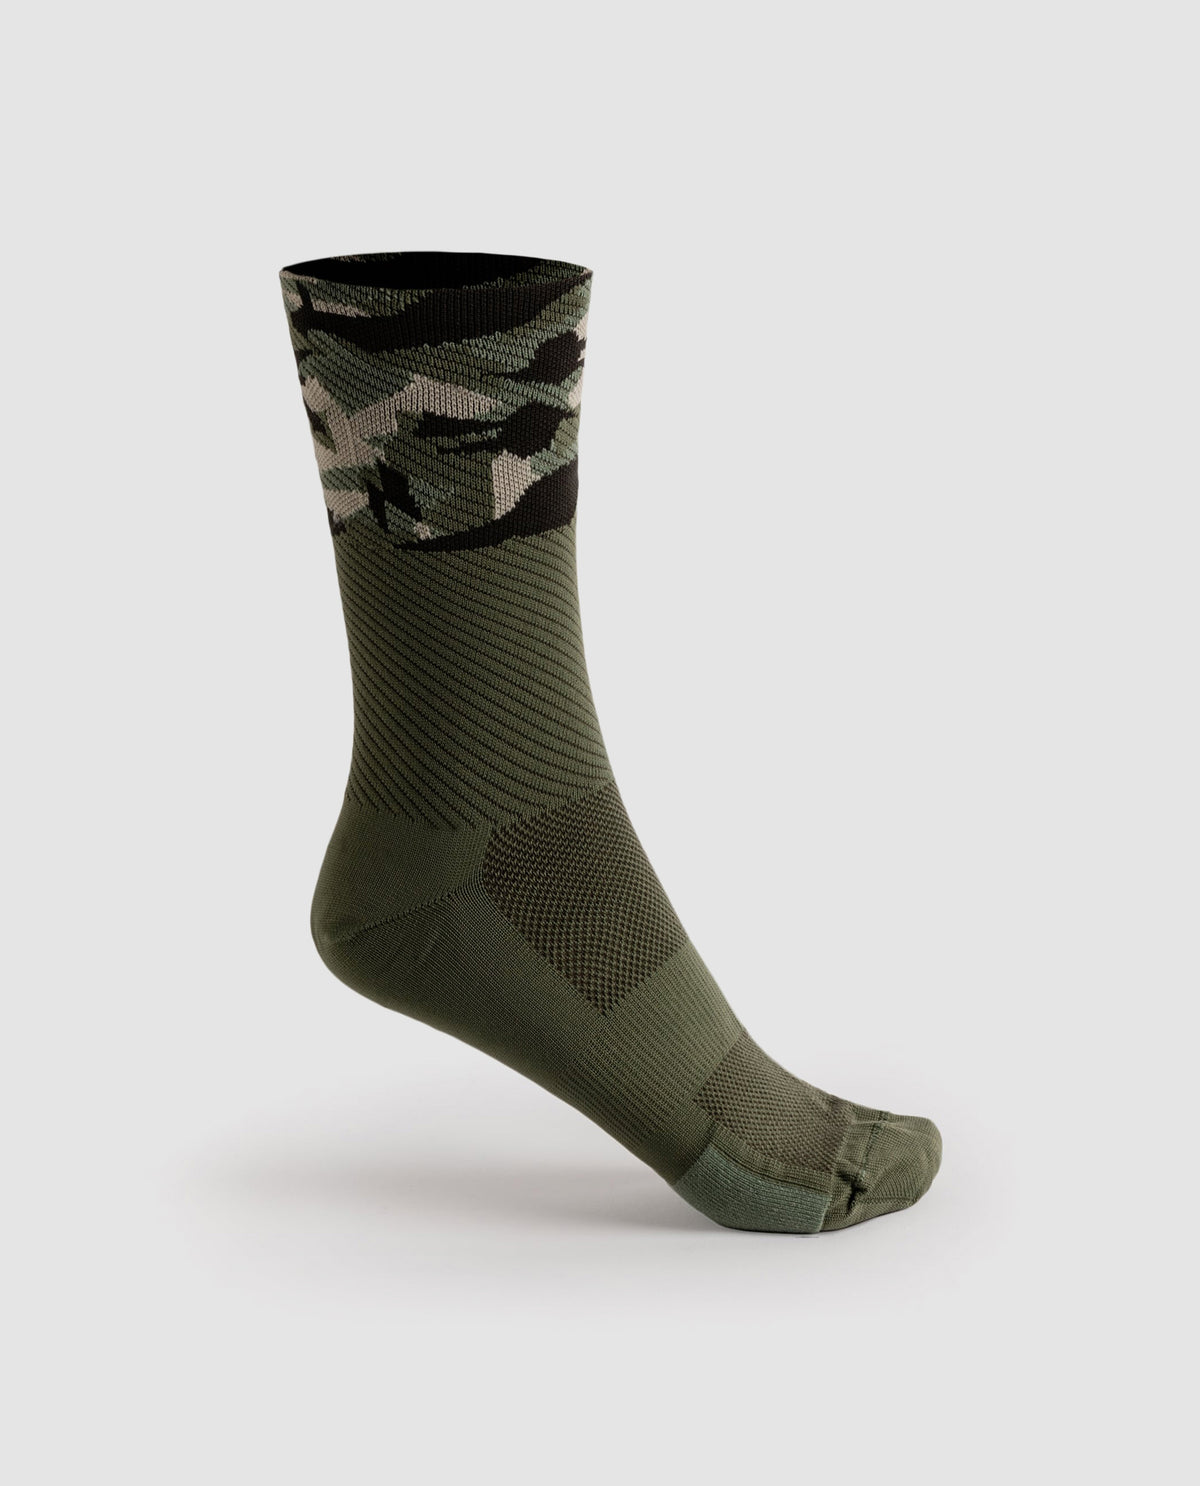 Mimesis Socks Jungle